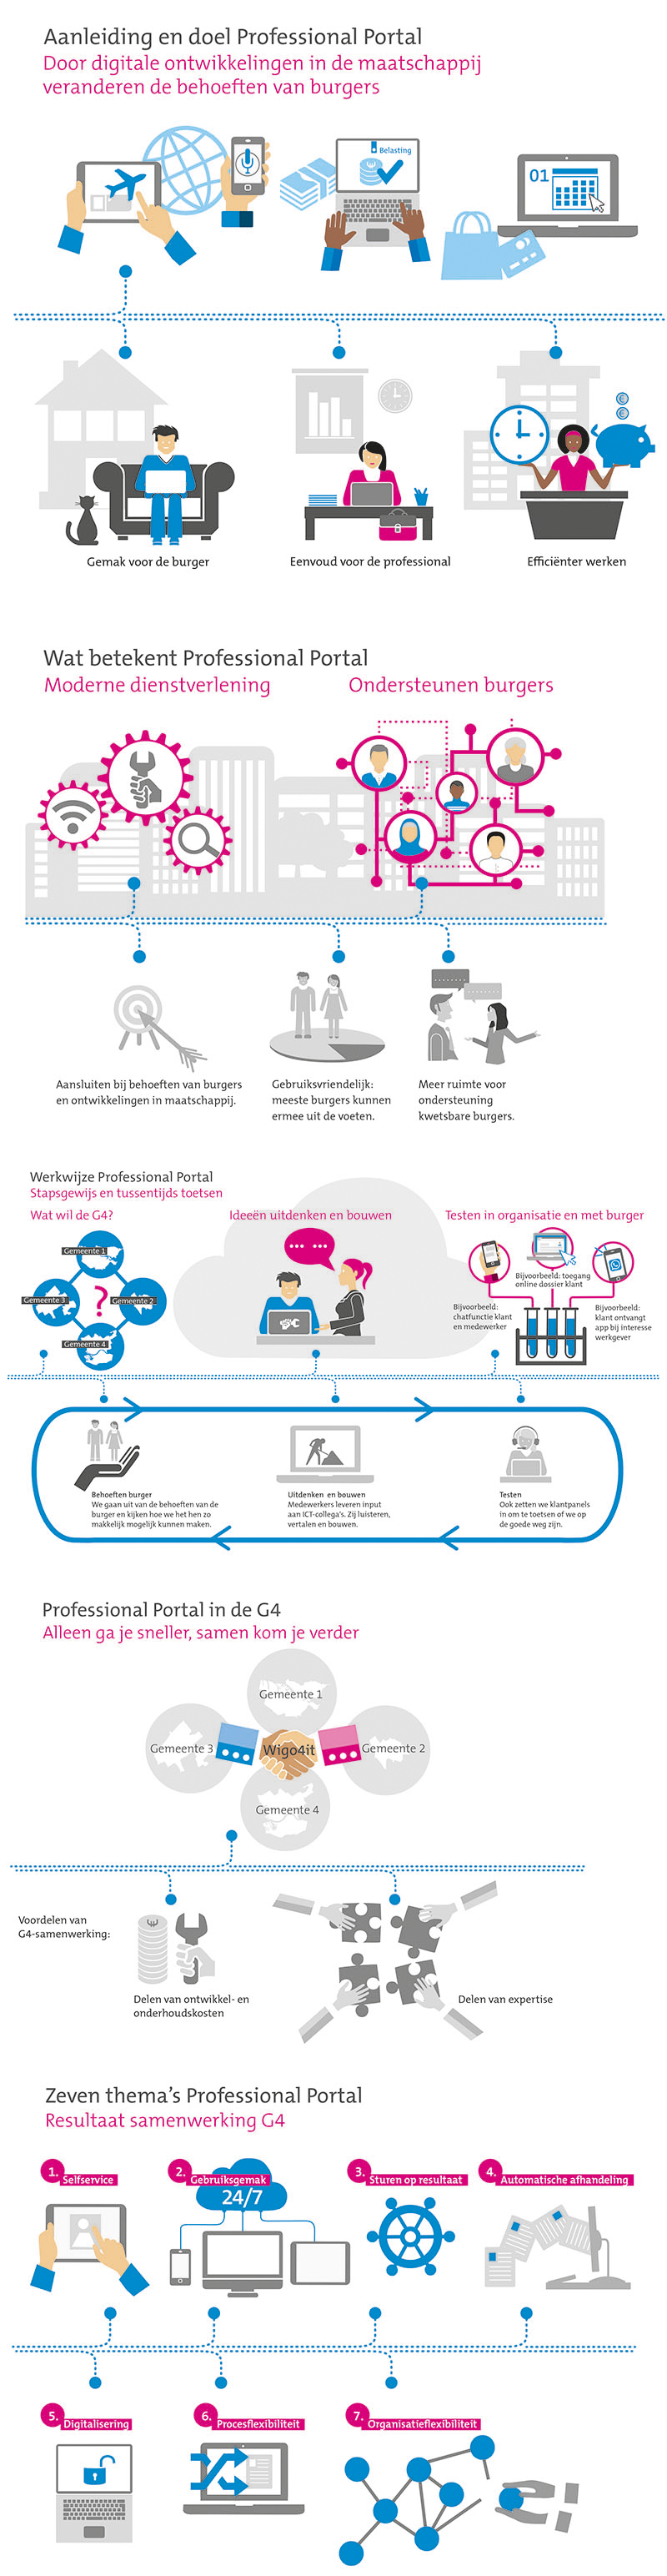 PPI_infographic